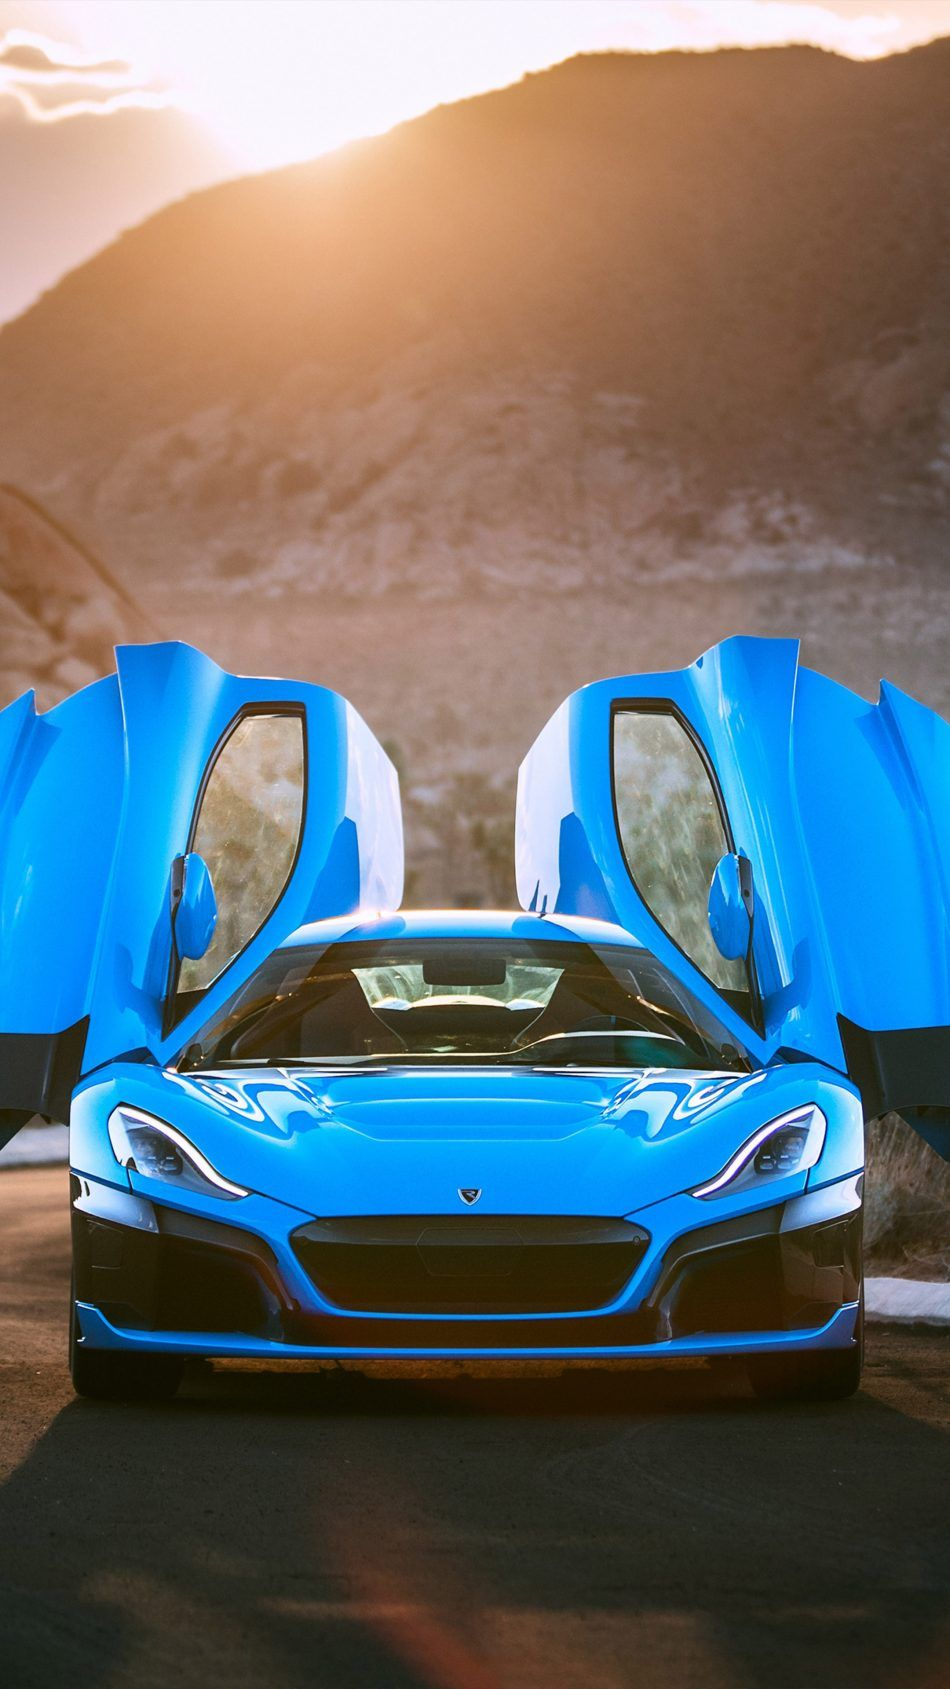 Make it easy with our tips on application. 4k Resolution Ultra Hd 4k Car Wallpaper For Mobile